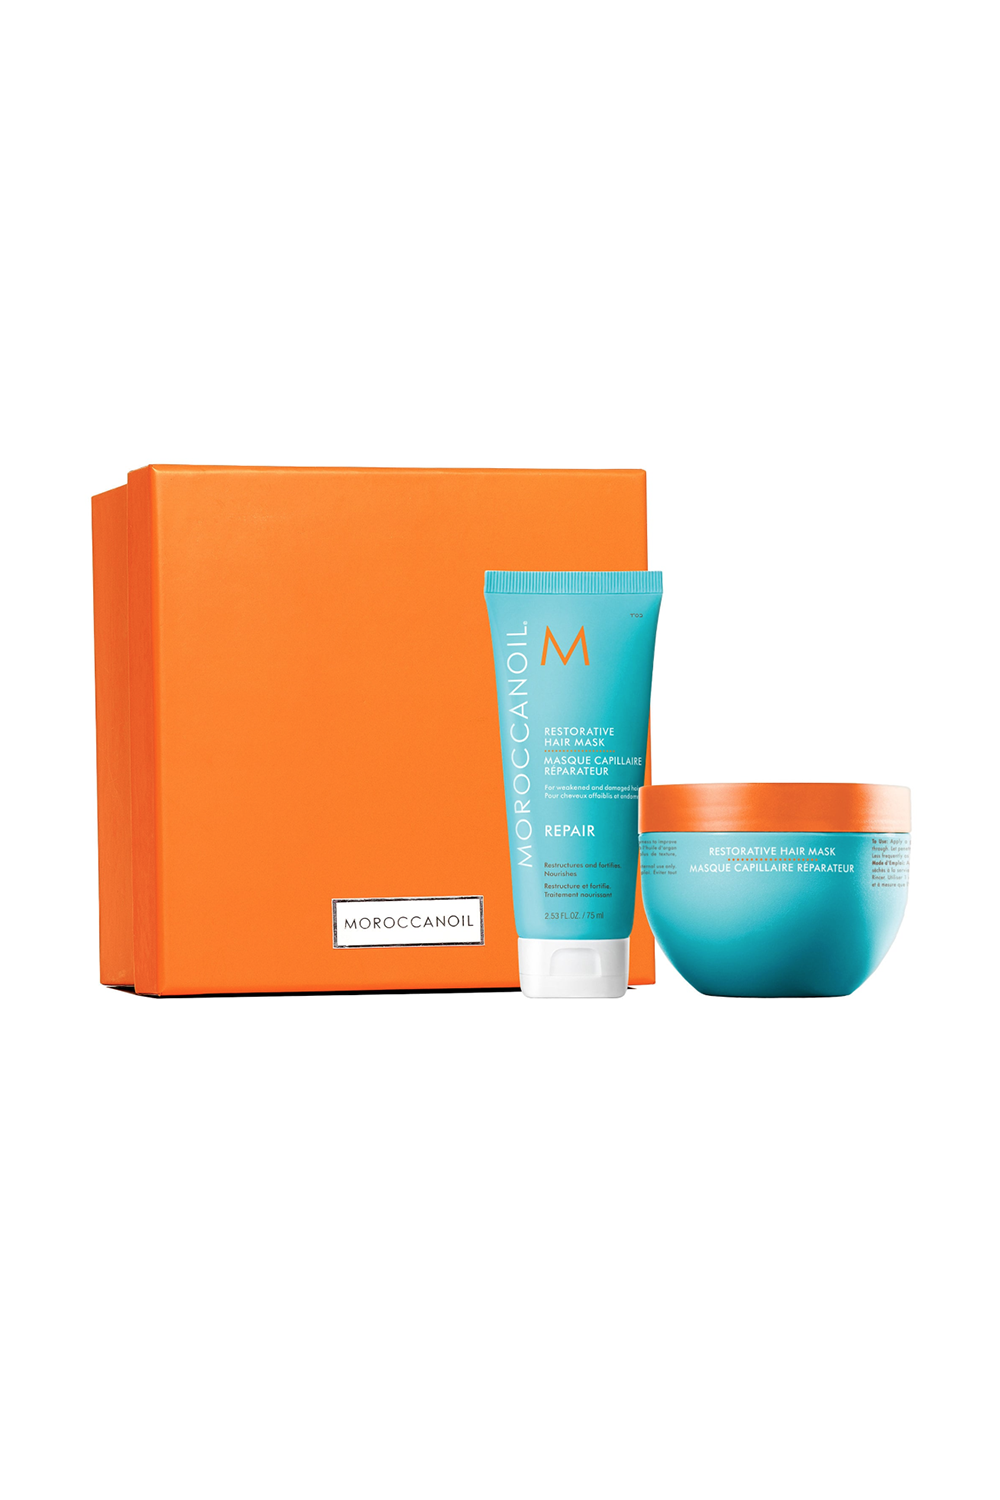 This Restorative Hair Mask Moroccanoil Home & Away Restorative Mask Duo, $48 SHOP IT Treat your hair to some TLC with this mask made of argan oil, shea butter, and caryocar brasiliense fruit oil to strengthen weak and damaged hair. Once the vitamins, antioxidants, and fatty acids settle into your cuticles, your hair will feel so soft and healthy.